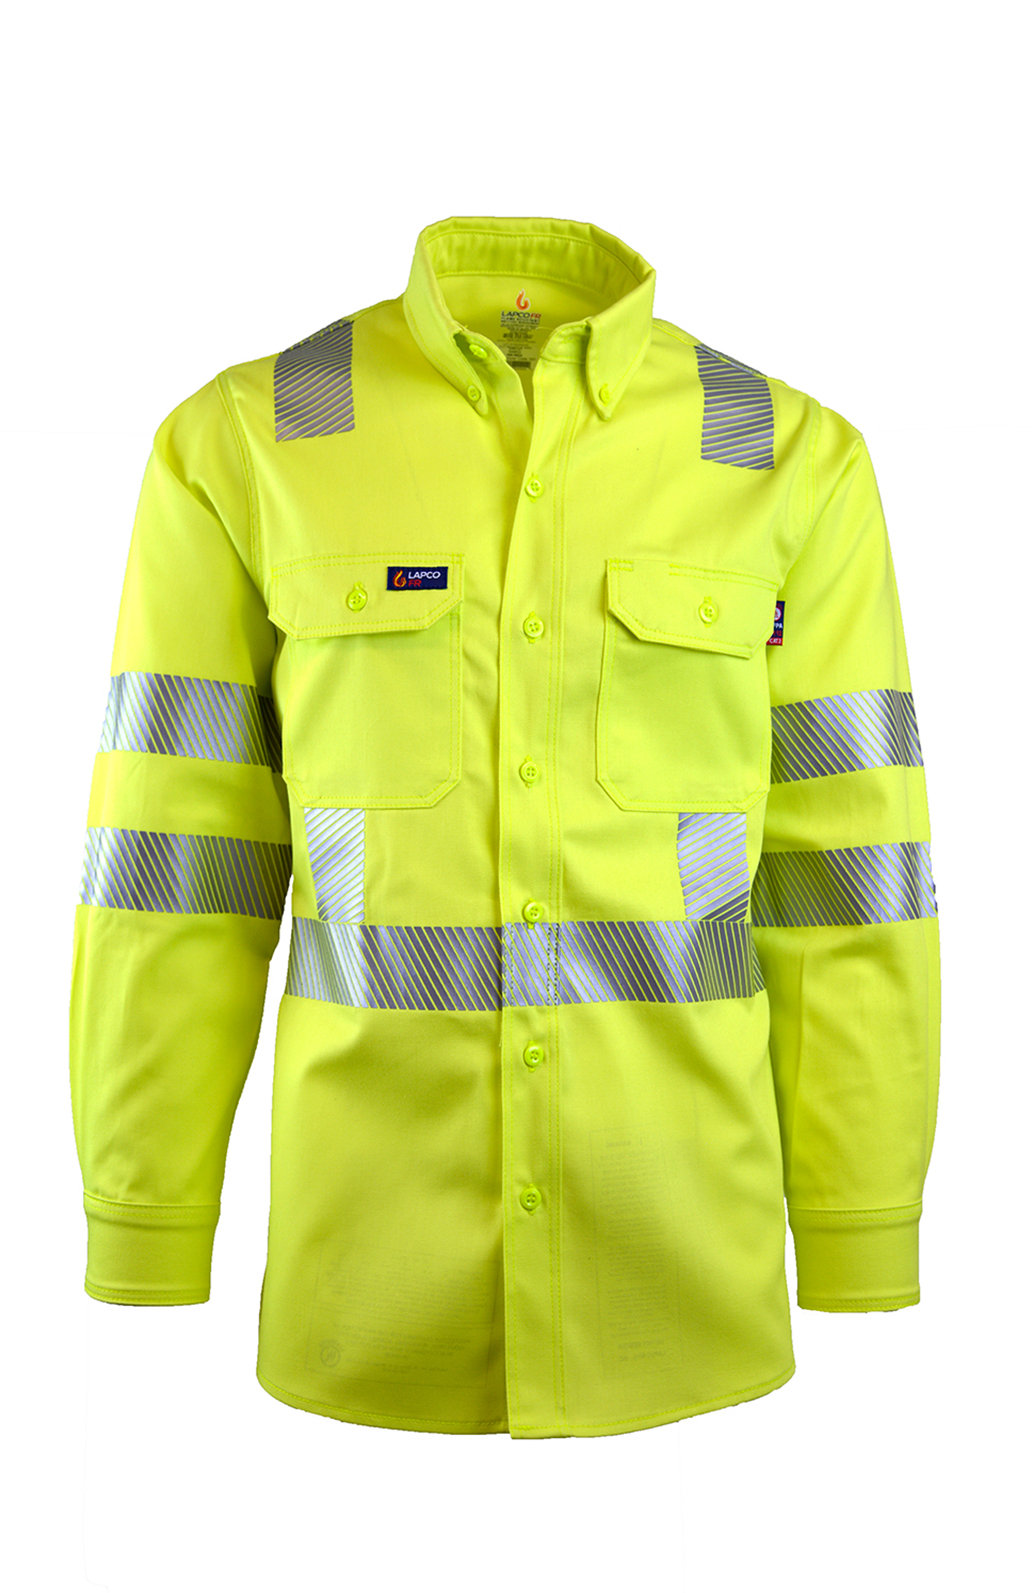 7oz. FR Hi-Viz Uniform Shirts | Class 3-Lapco